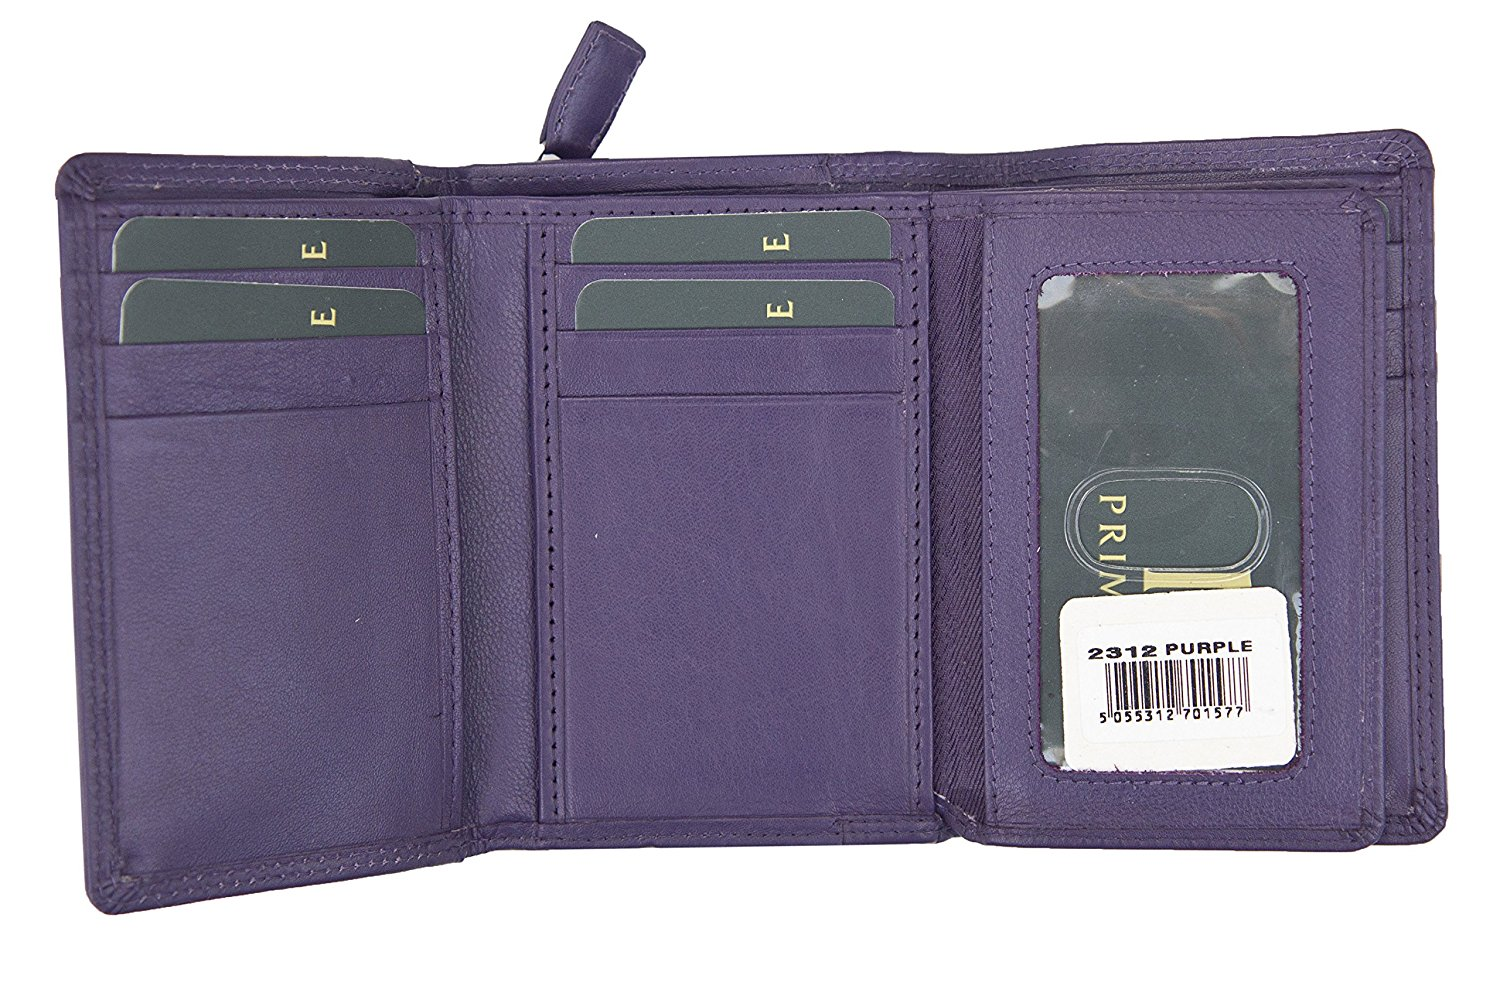 Ladies-Super-Soft-Genuine-Leather-Tri-Fold-Purse-Coin-Section-Purple-Red-Plum thumbnail 12